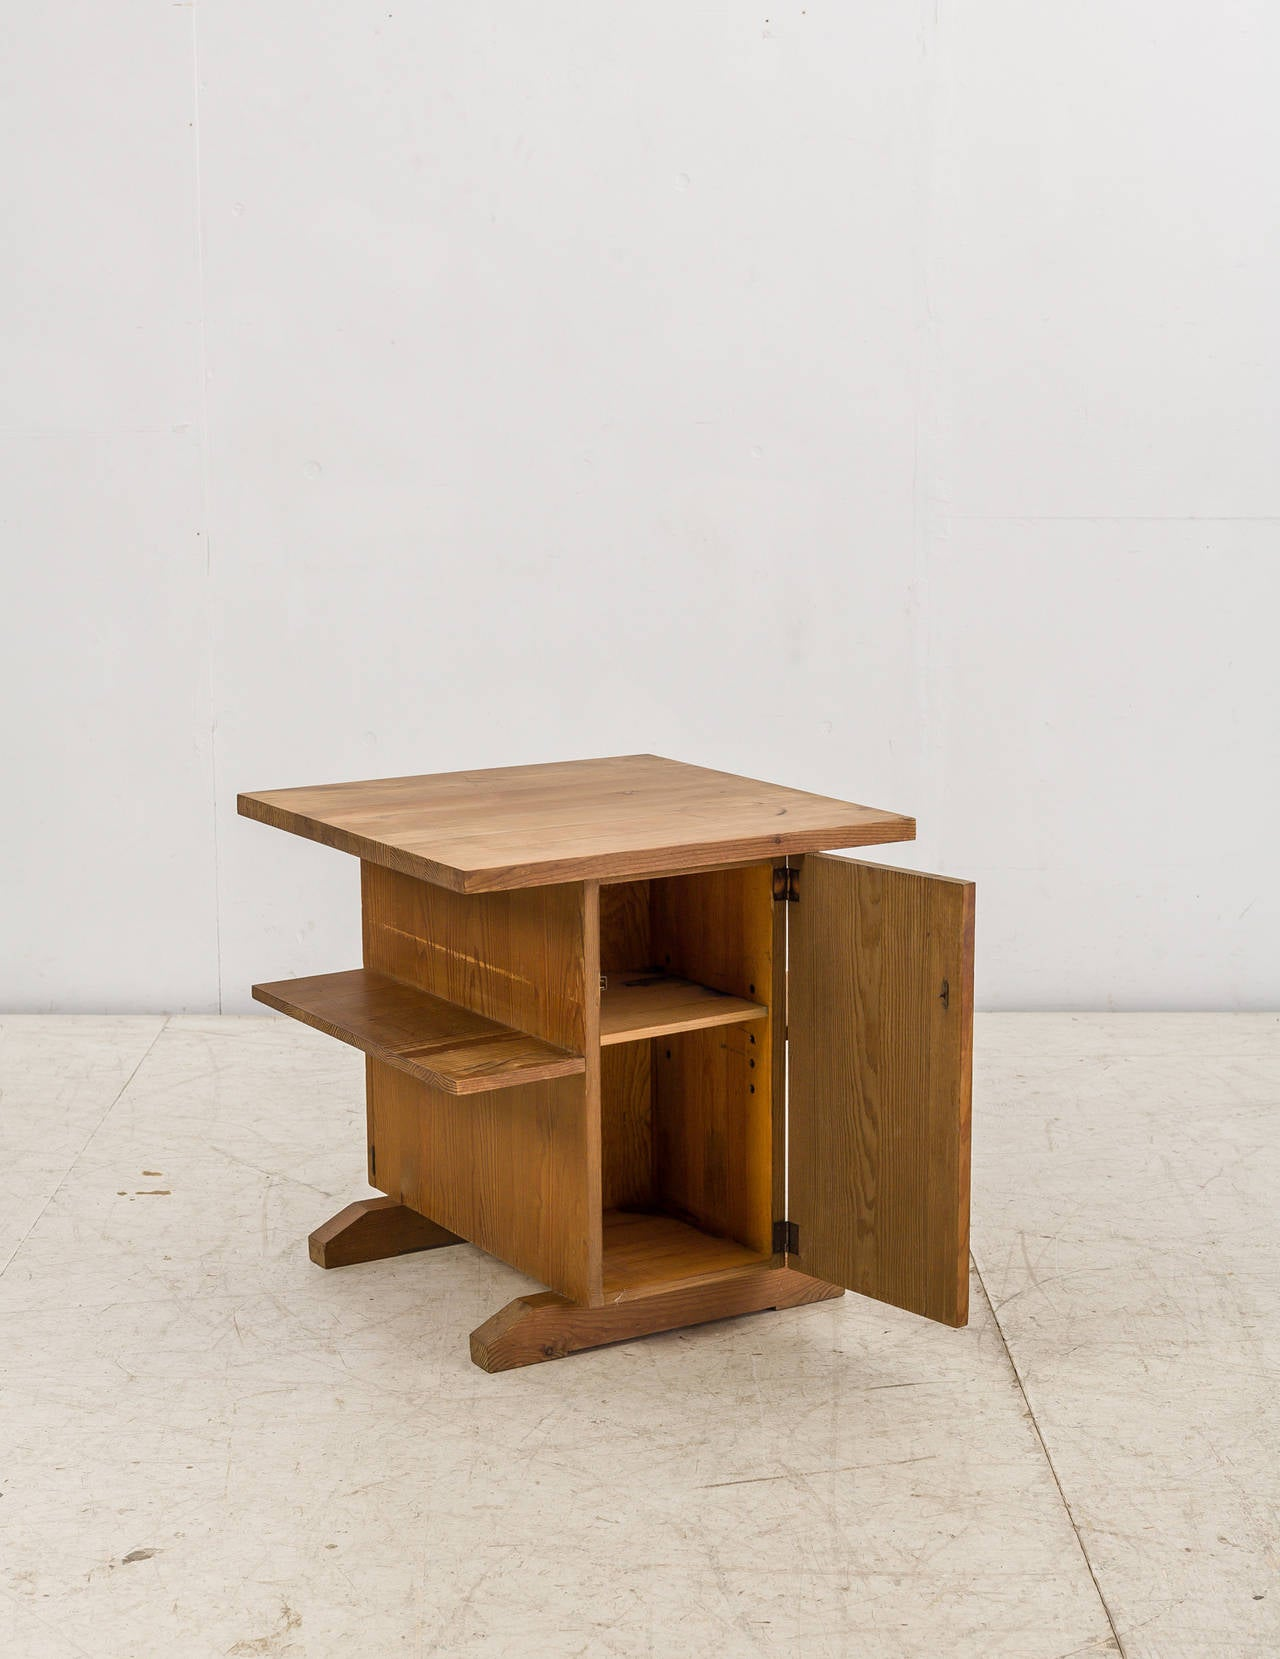 Small Coffee Table Mini Bar or Bedside Table in Pine from Sweden